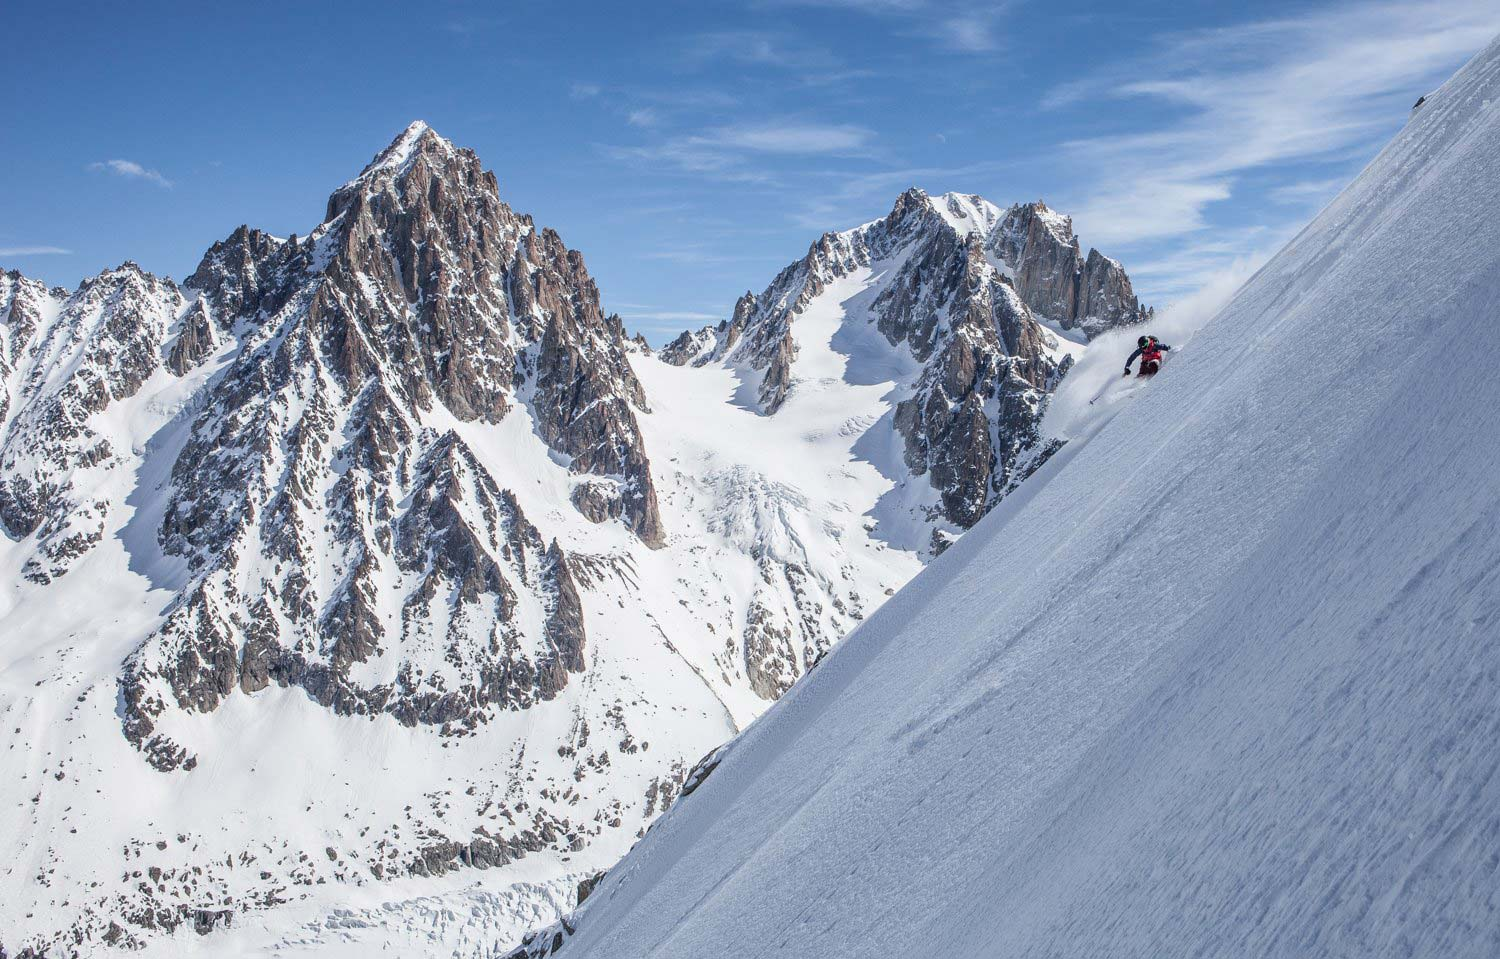 Holly Walker on Argentiere Glacier in Chamonix. Photo by Sebastien Baritussio.